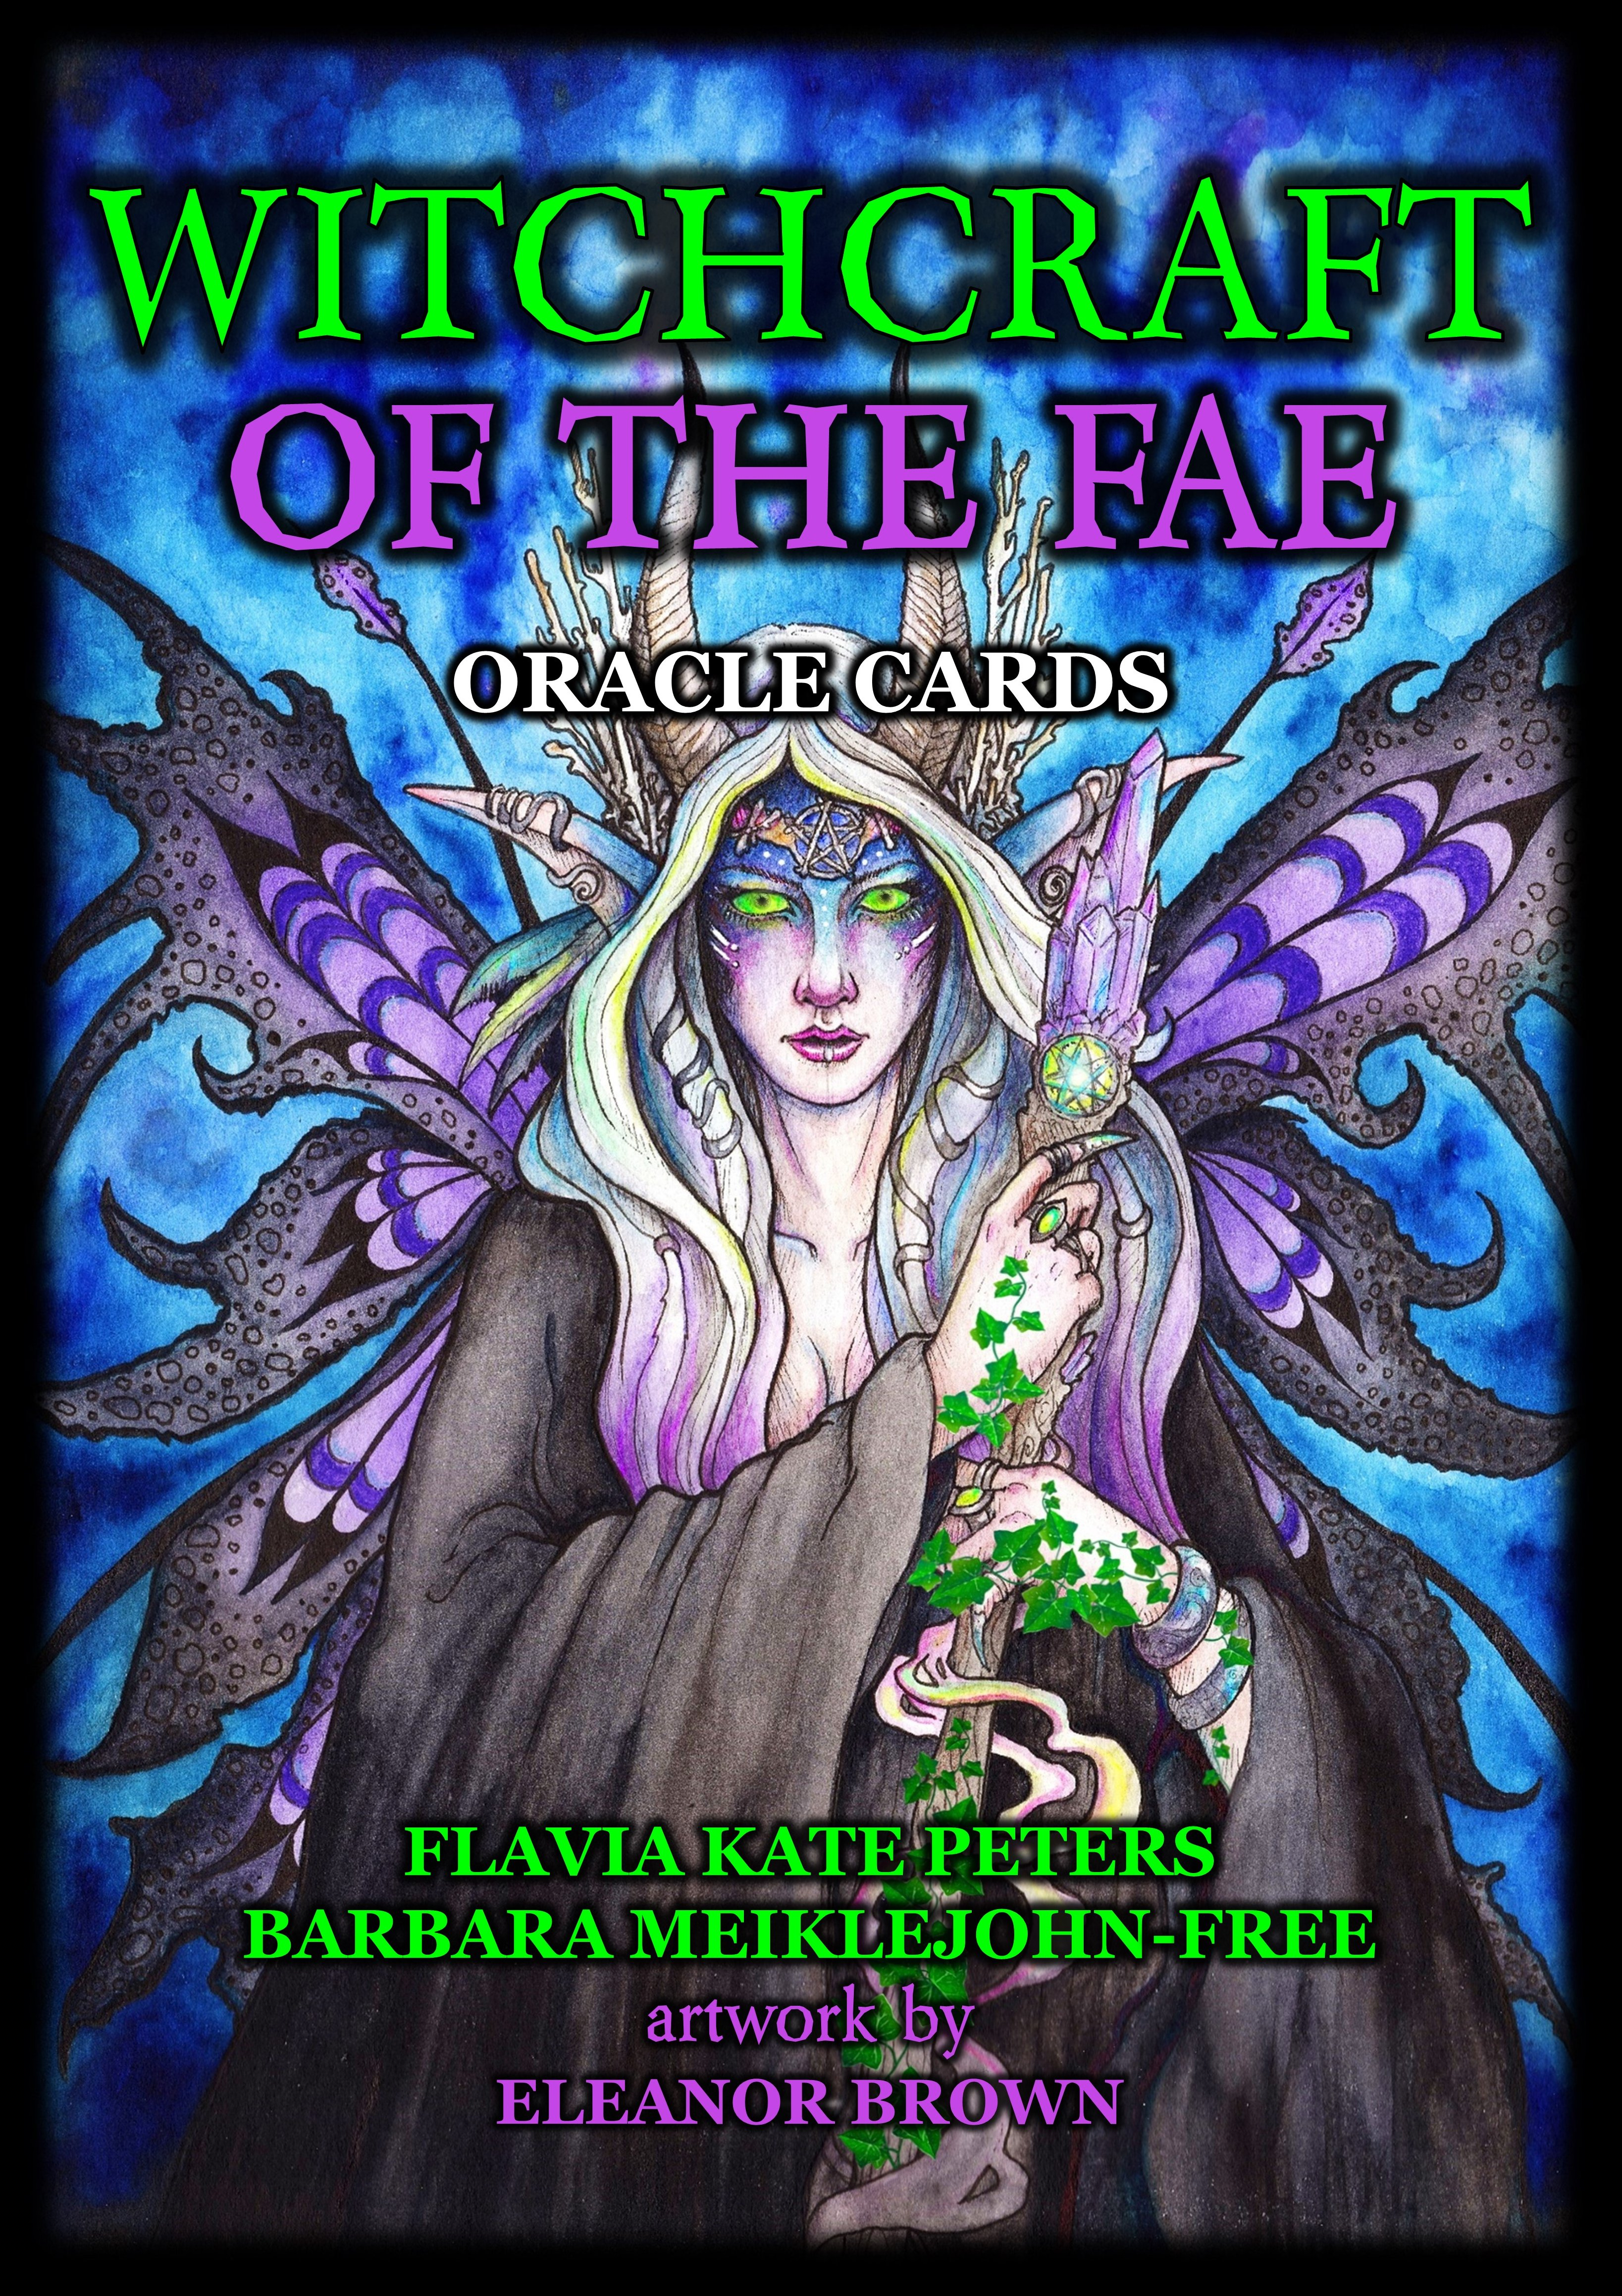 Witchcraft of the Fae